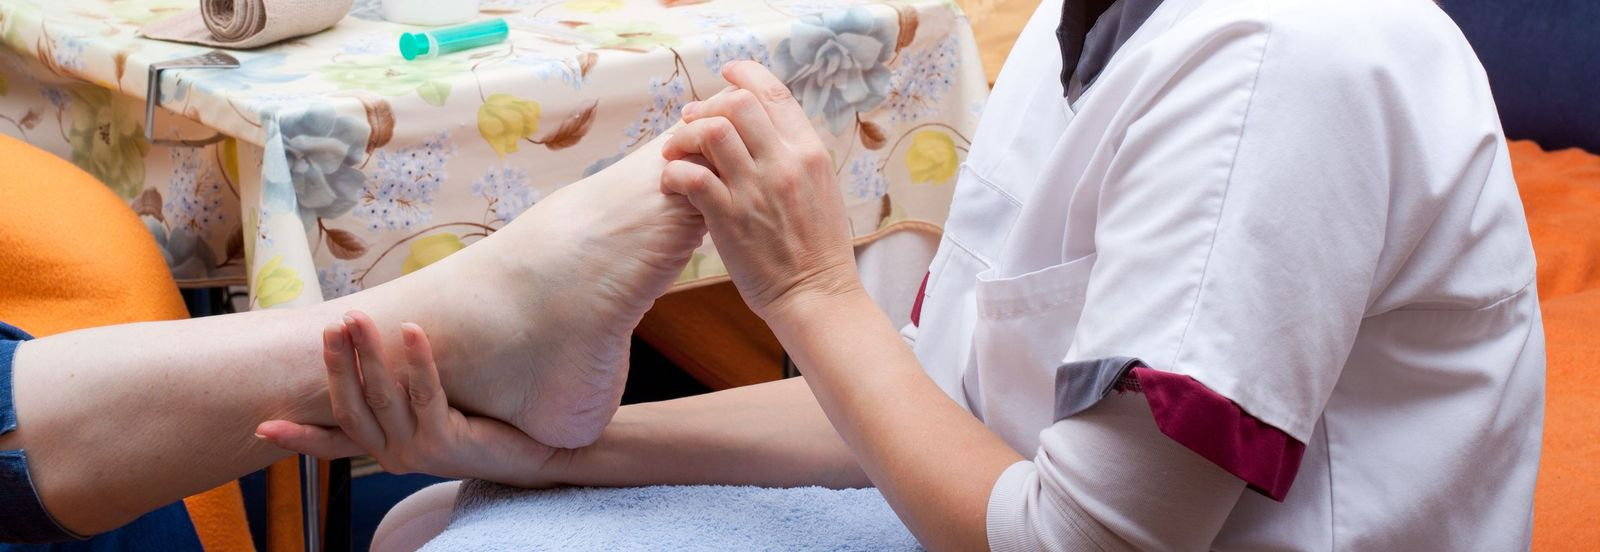 FOOT CARE SERVICES